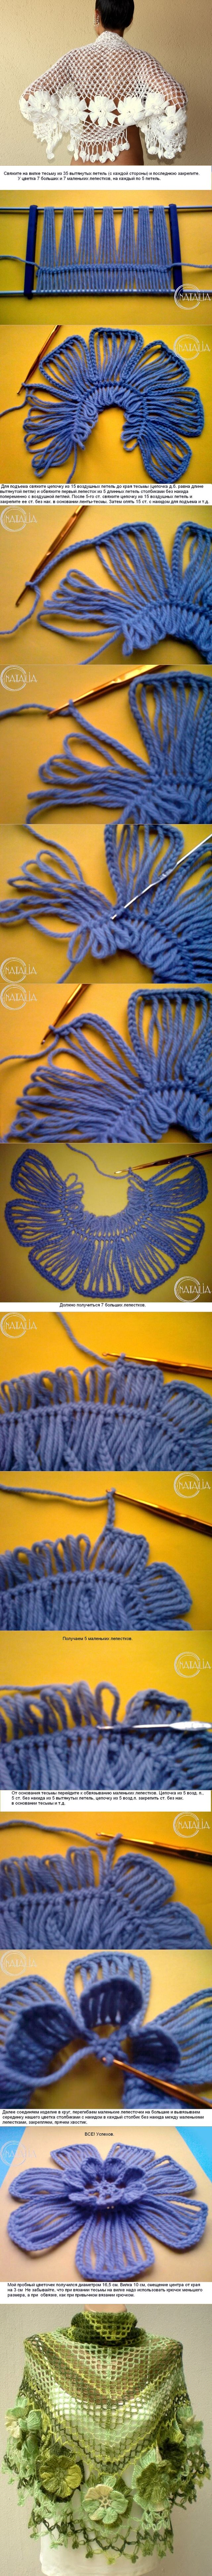 DIY Basic Flower with Crochet Fork and Hook | www.FabArtDIY.com LIKE Us on Facebook ==> https://www.facebook.com/FabArtDIY